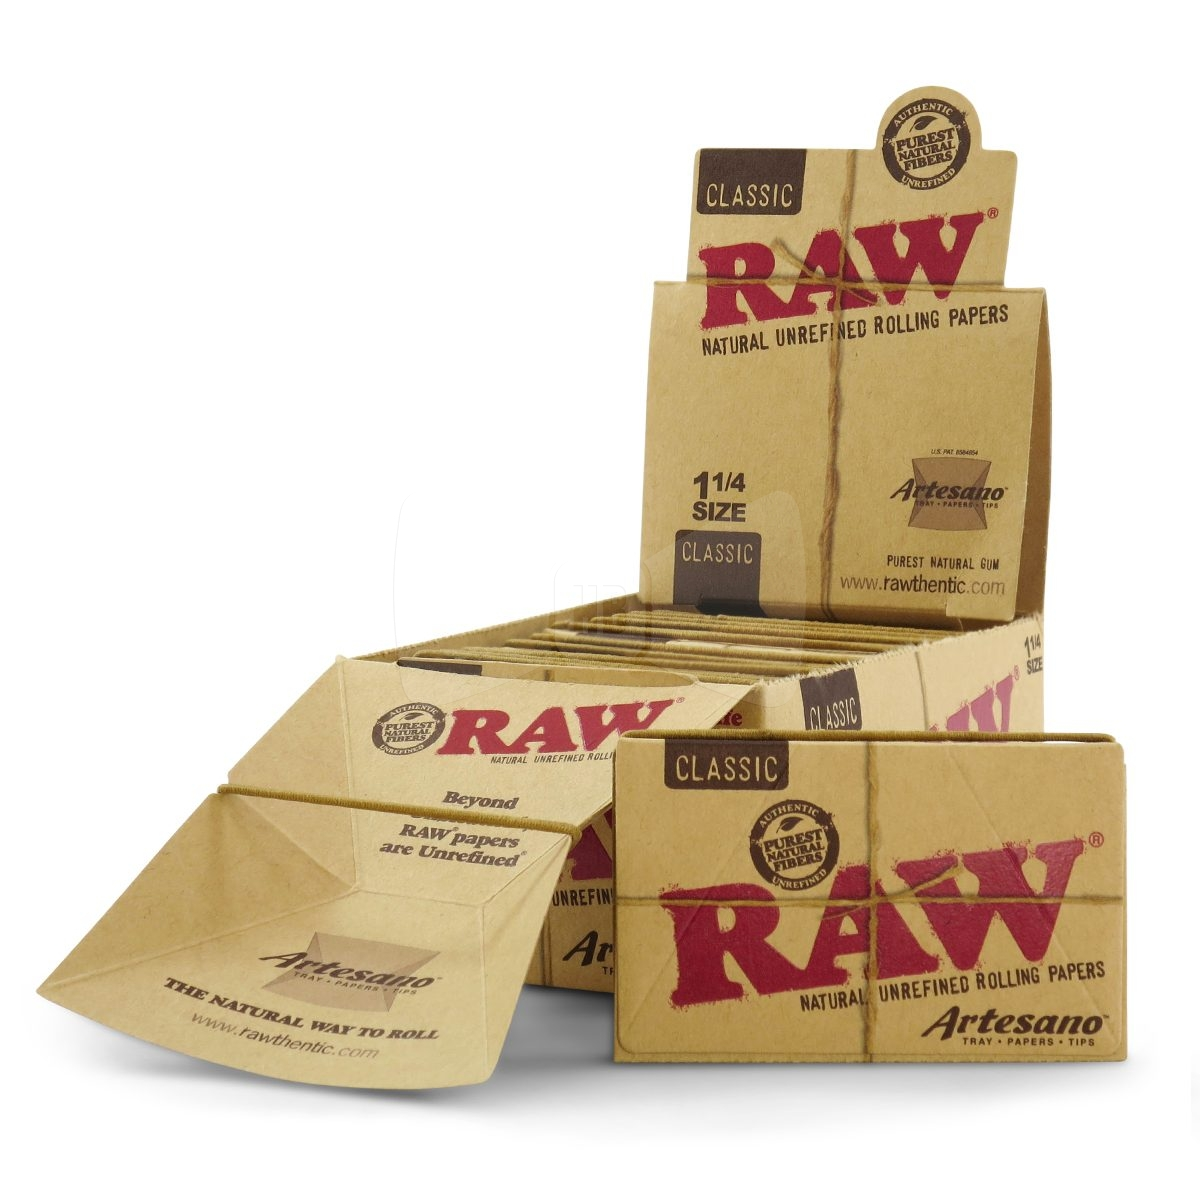 RAW Artesano 1 1/4 Rolling Papers 1 Pack